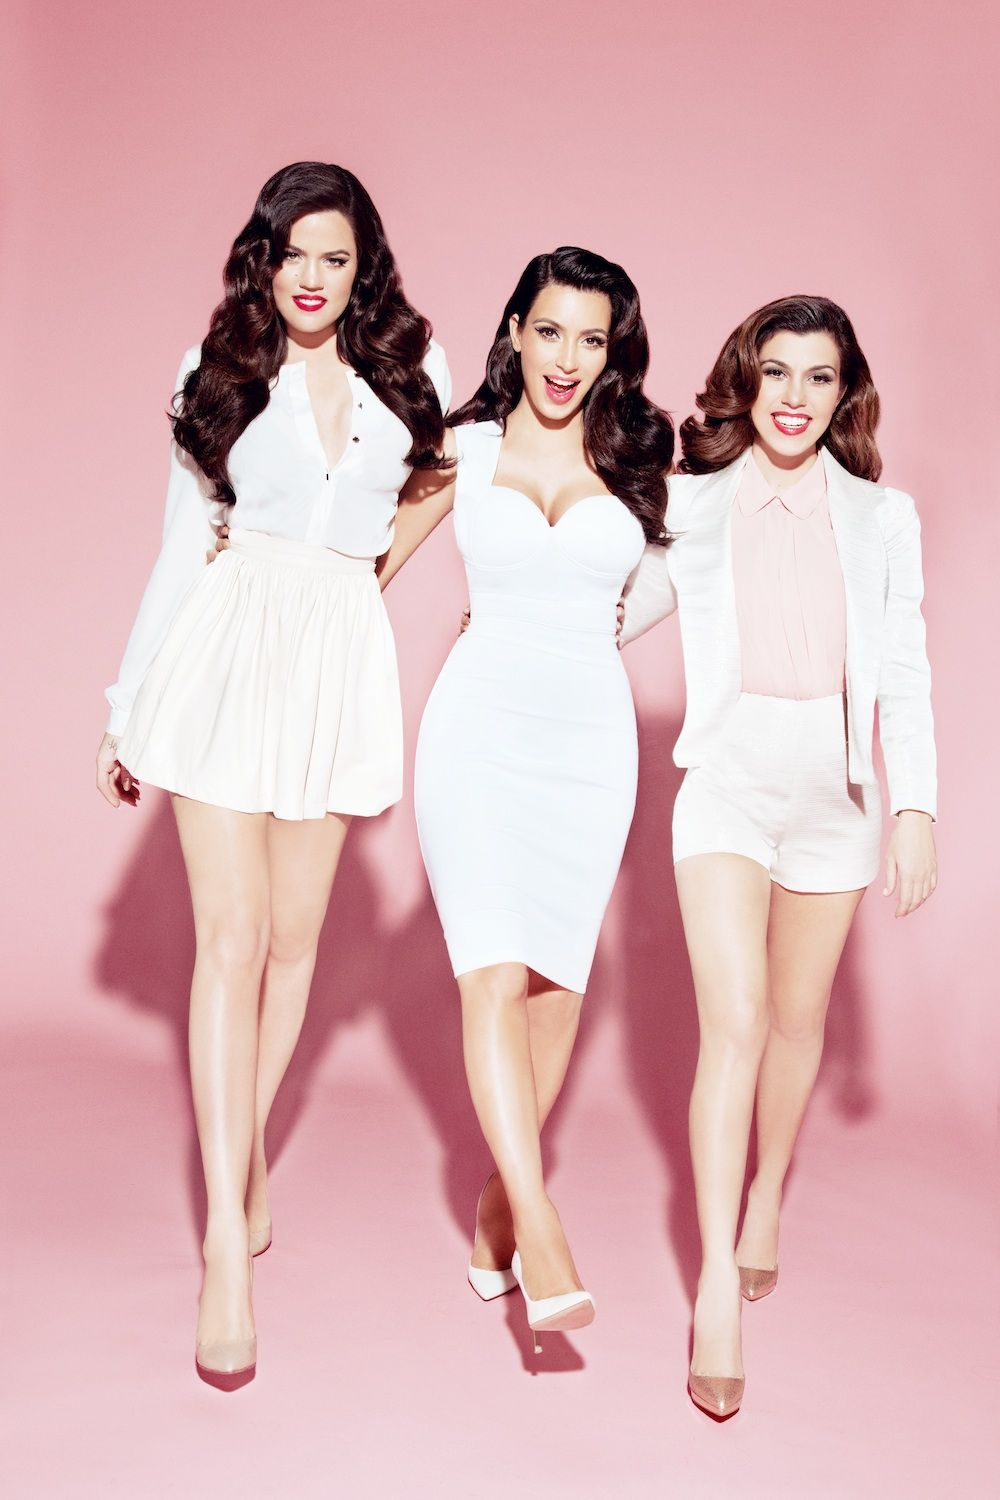 Kardashian Kollection for Australia Shoot with Ellen Von Unwerth